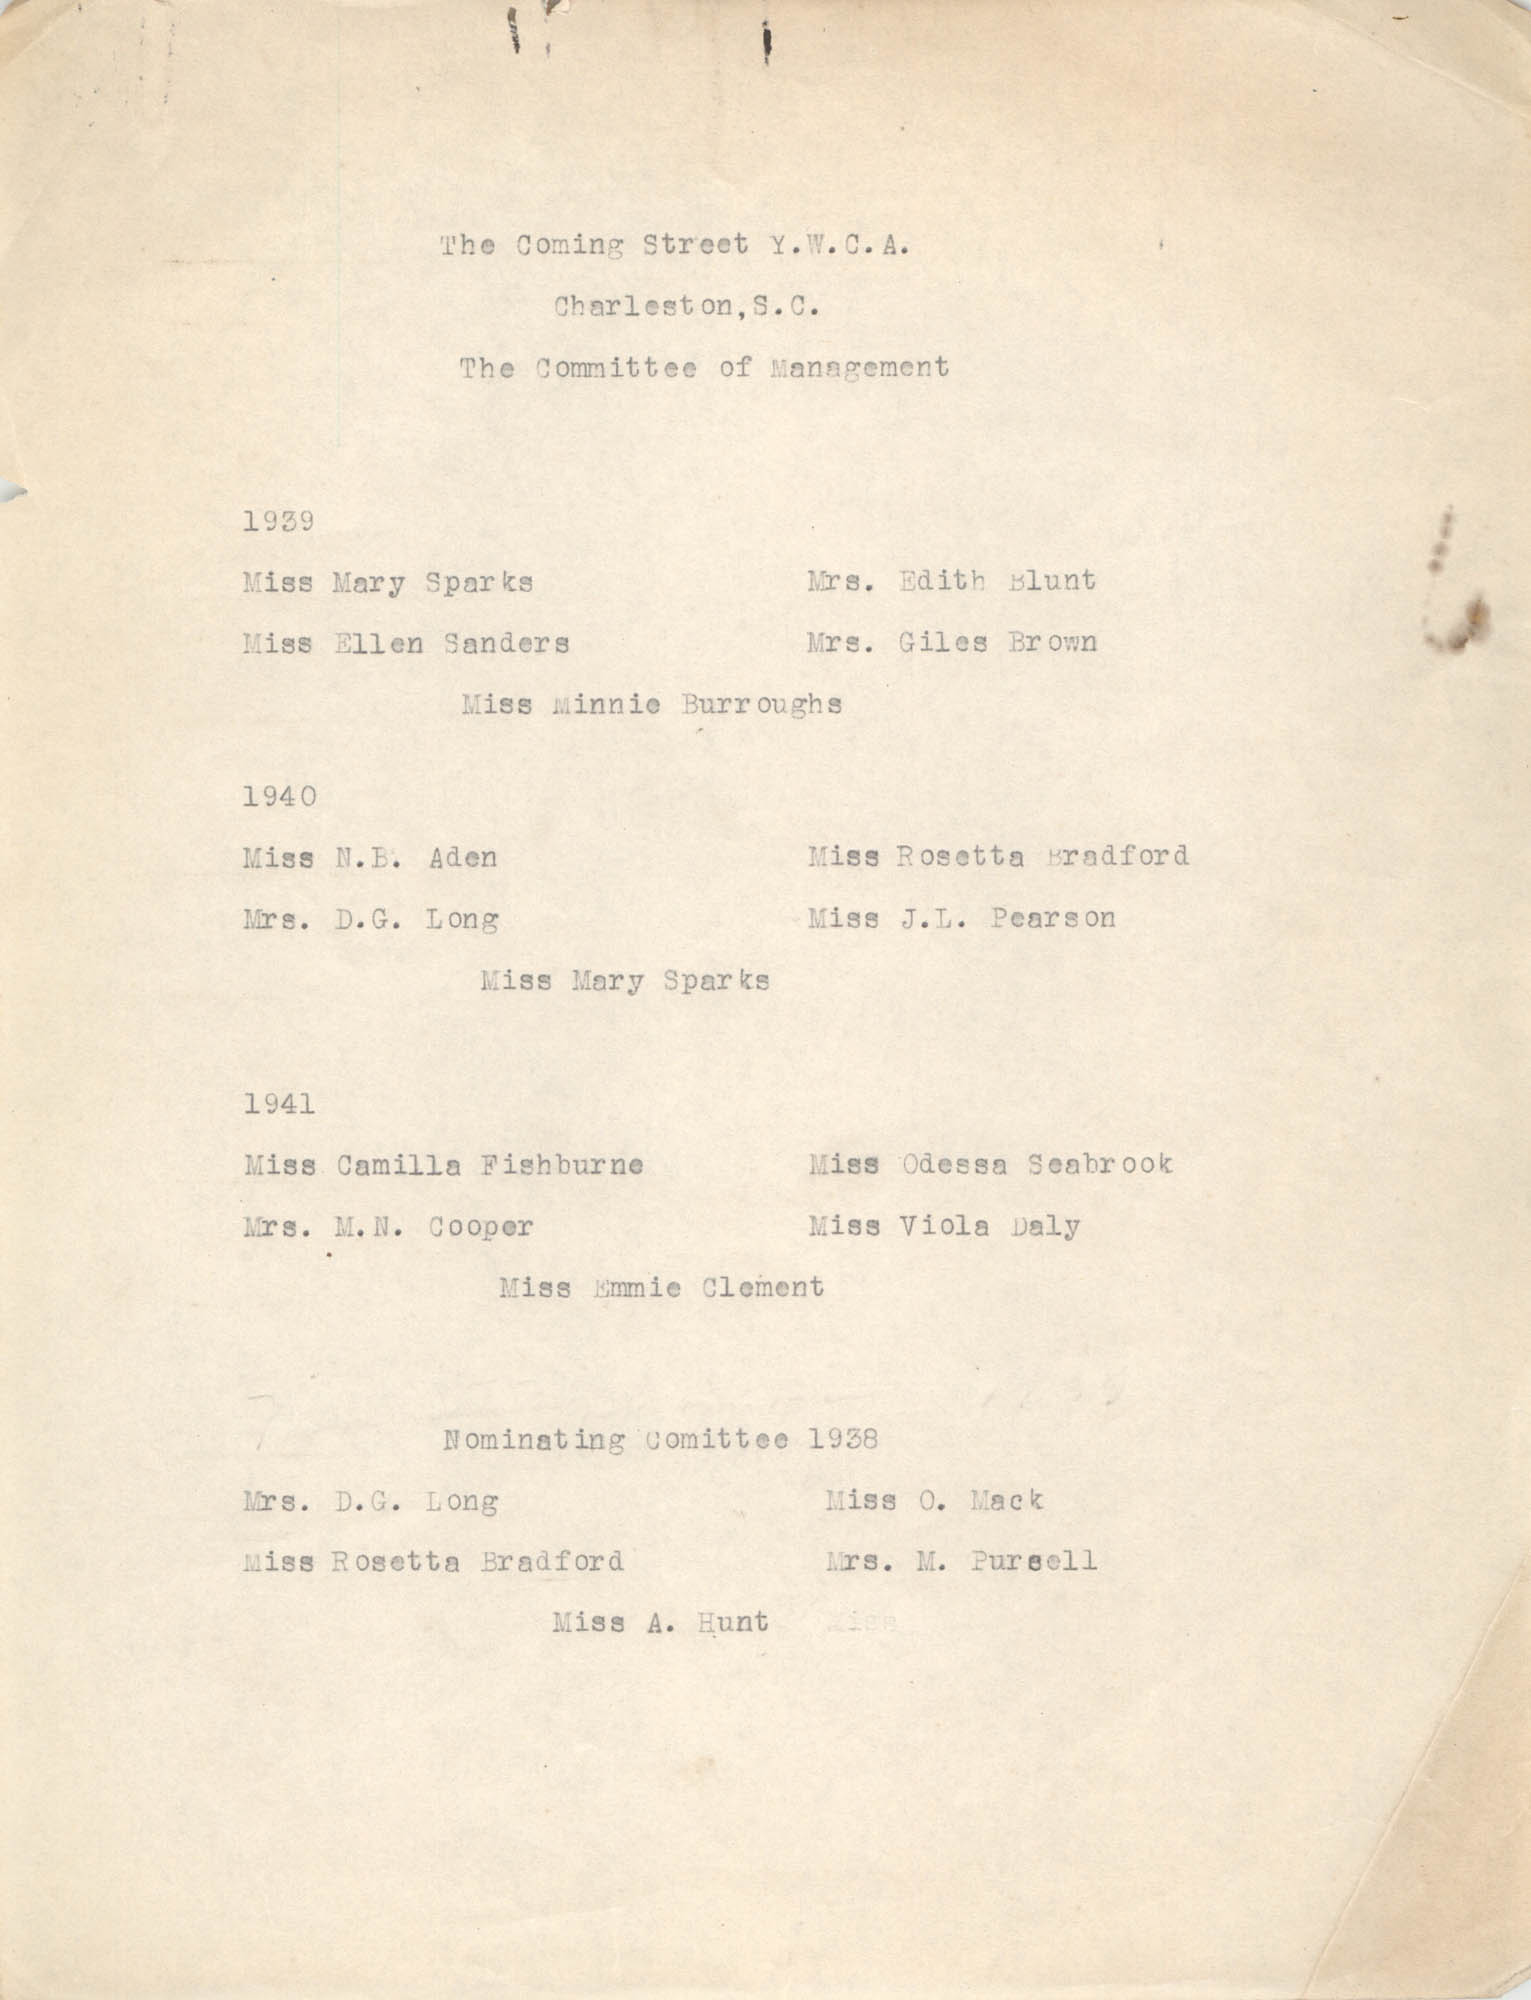 Committee of Management for 1939-1941, Coming Street Y.W.C.A.